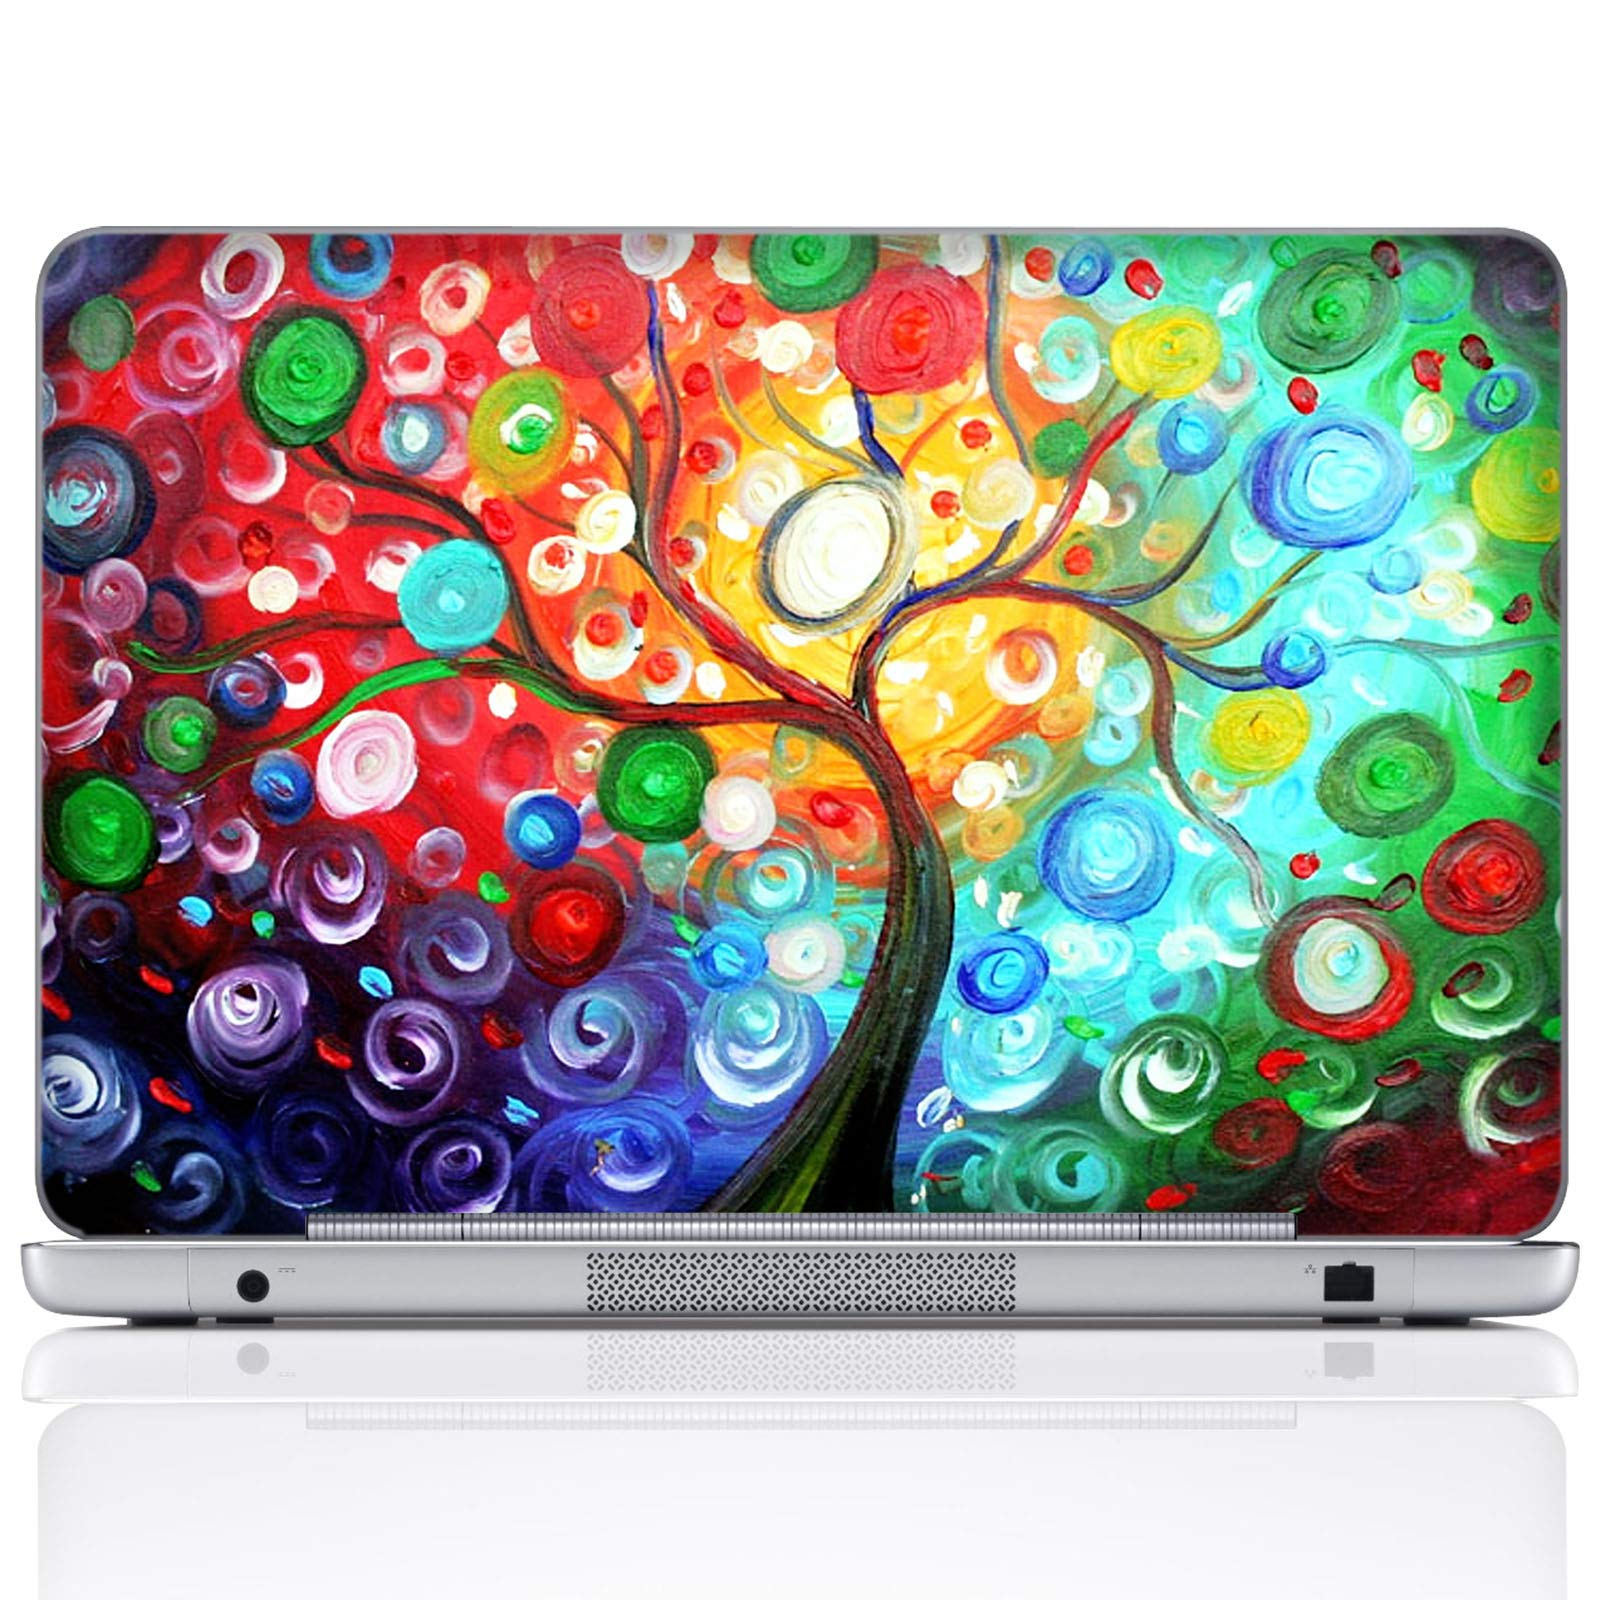 Meffort Inc 15 15.6 Inch Laptop Notebook Skin Sticker Cover Art Decal (Included 2 Wrist pad) - Colorful Tree